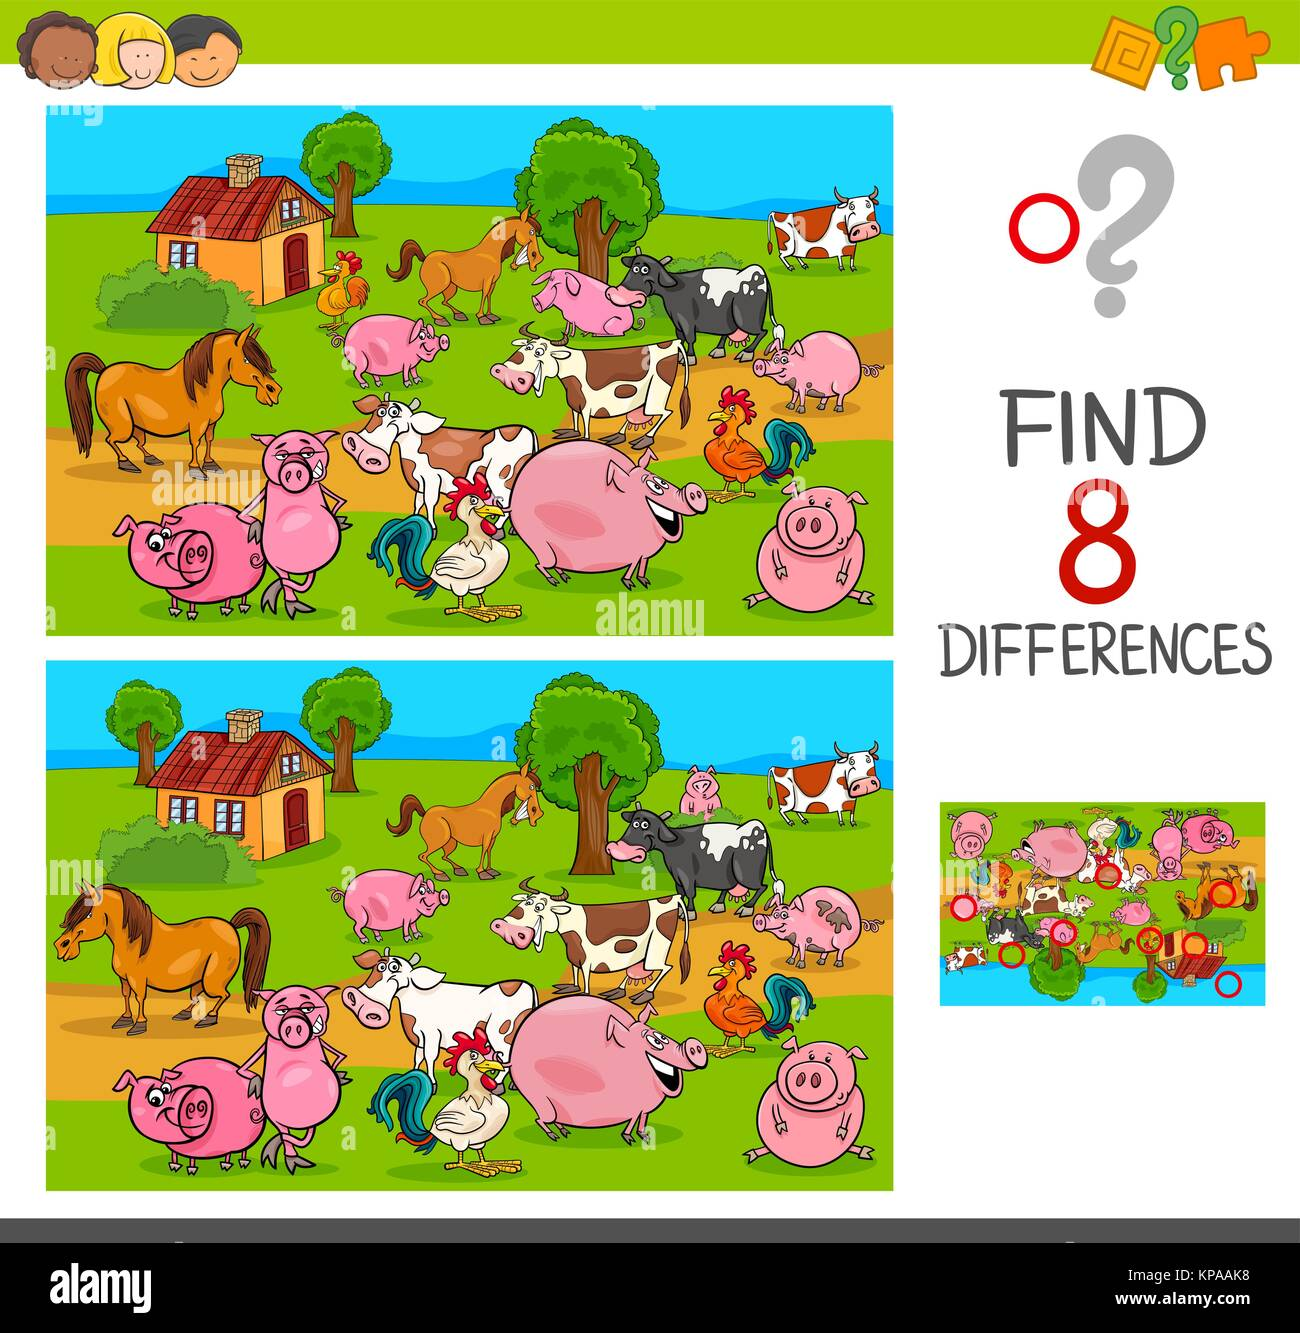 Animal farm differences between the book - Coursework Sample